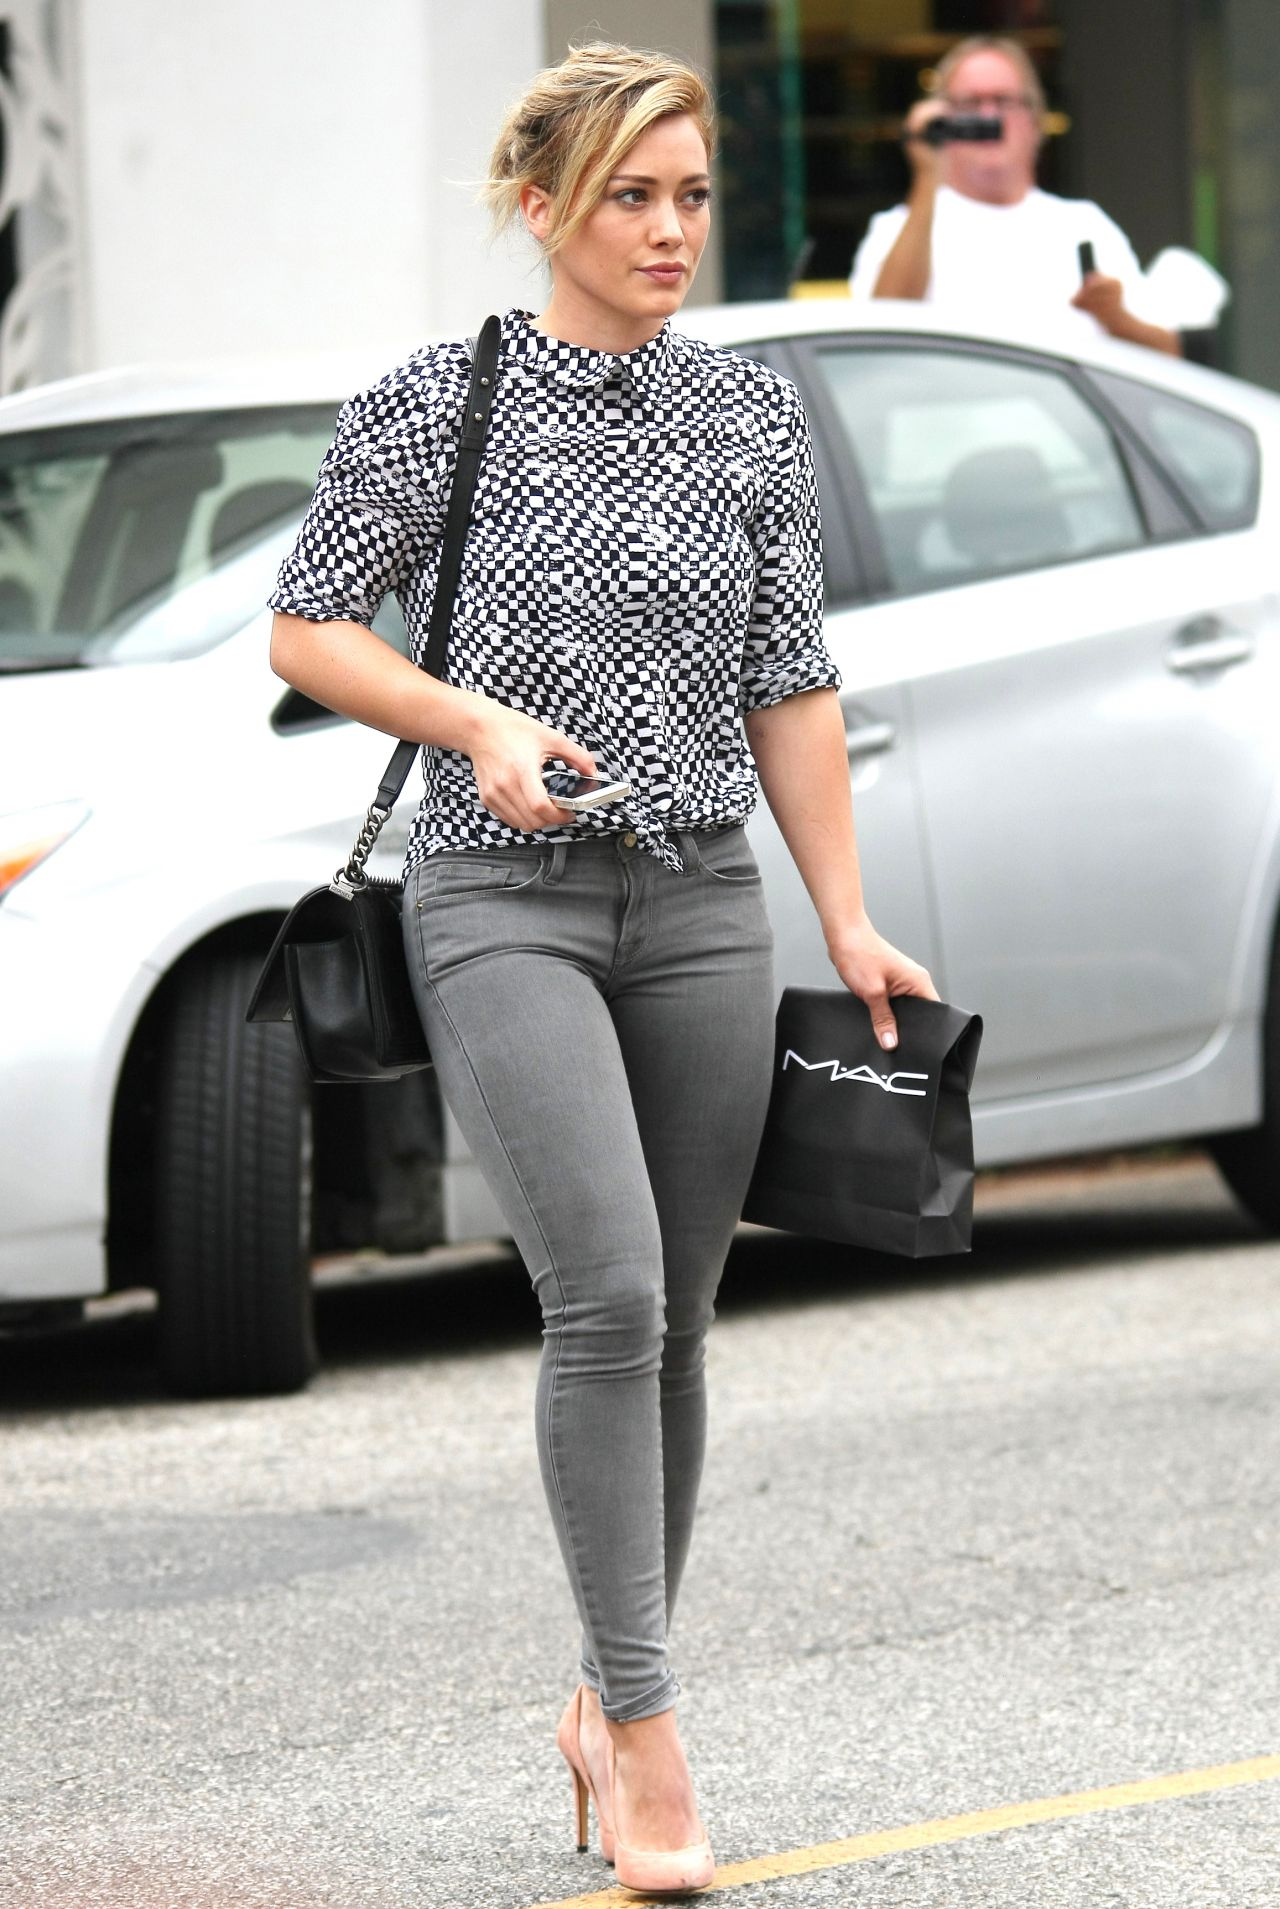 Hilary Duff In Jeans At Mac Cosmetics In West Hollywood July 2014